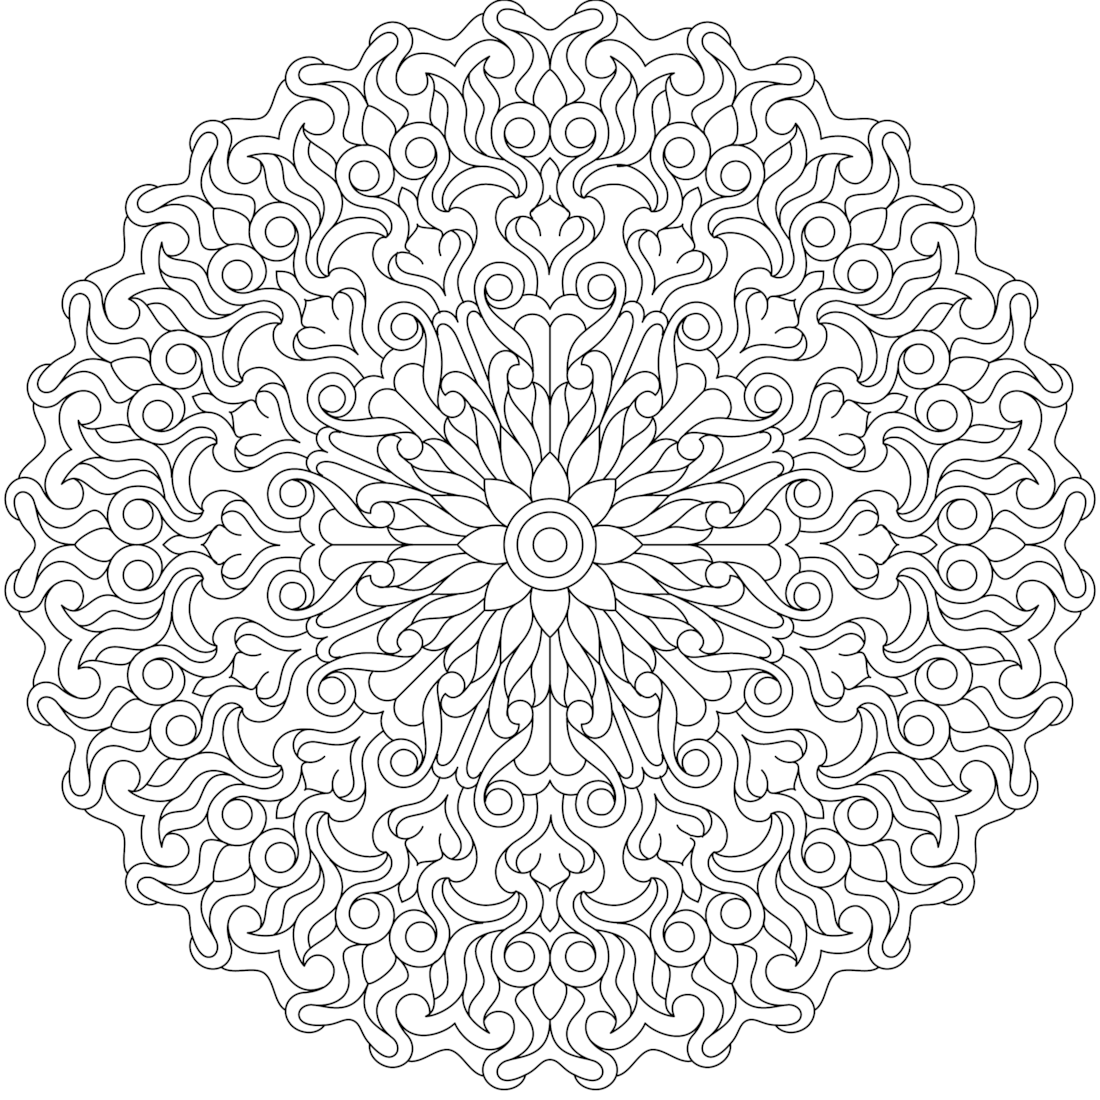 Coloring pages kindness - This Is Temple Of Kindness A Coloring Page For You To Print